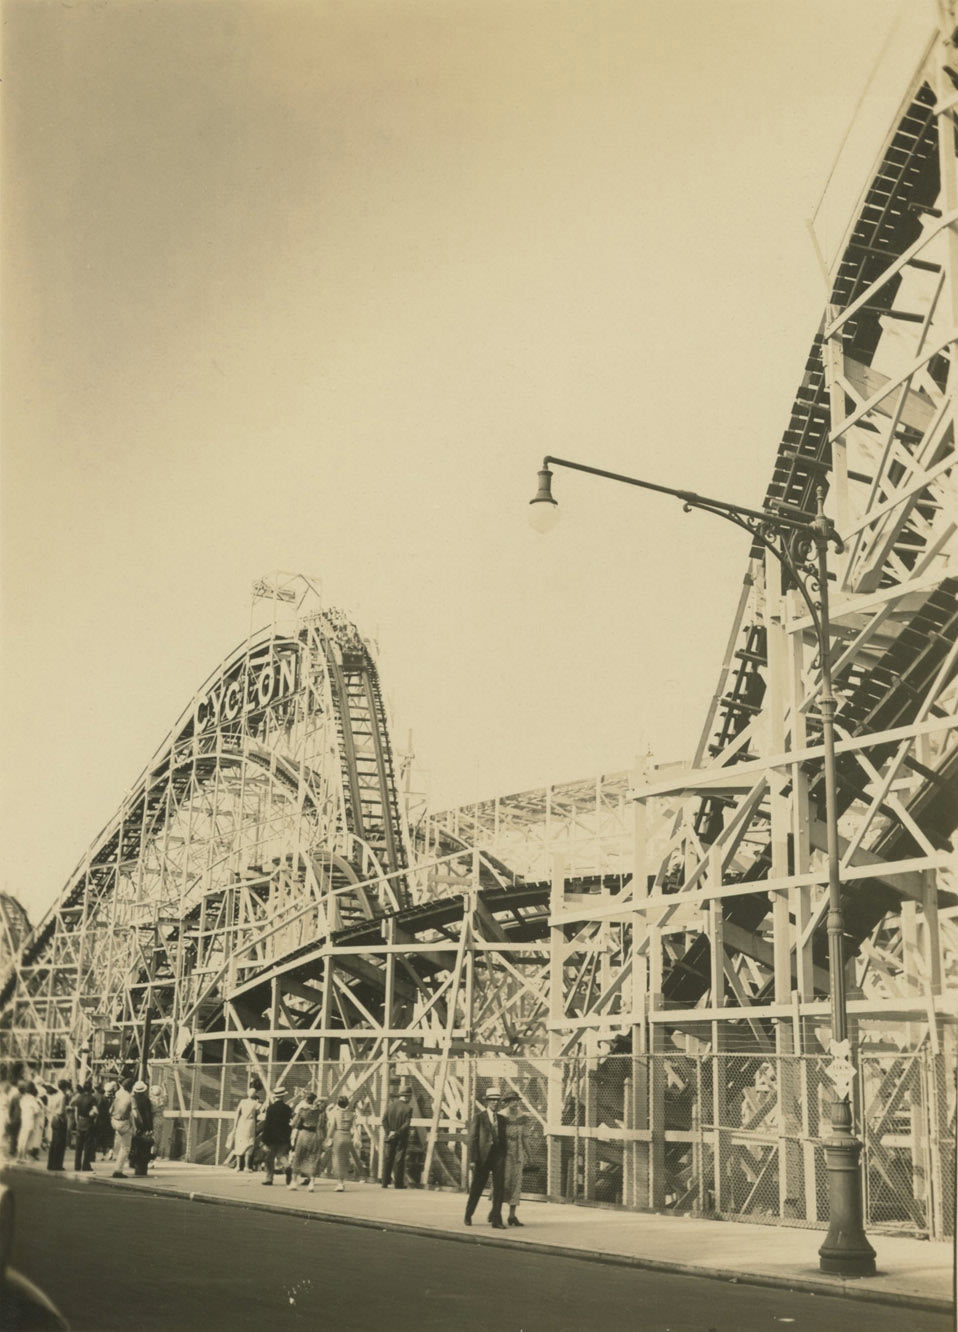 Cyclone Ride, two humps, Coney Island - Alexander Artway | FFOTO